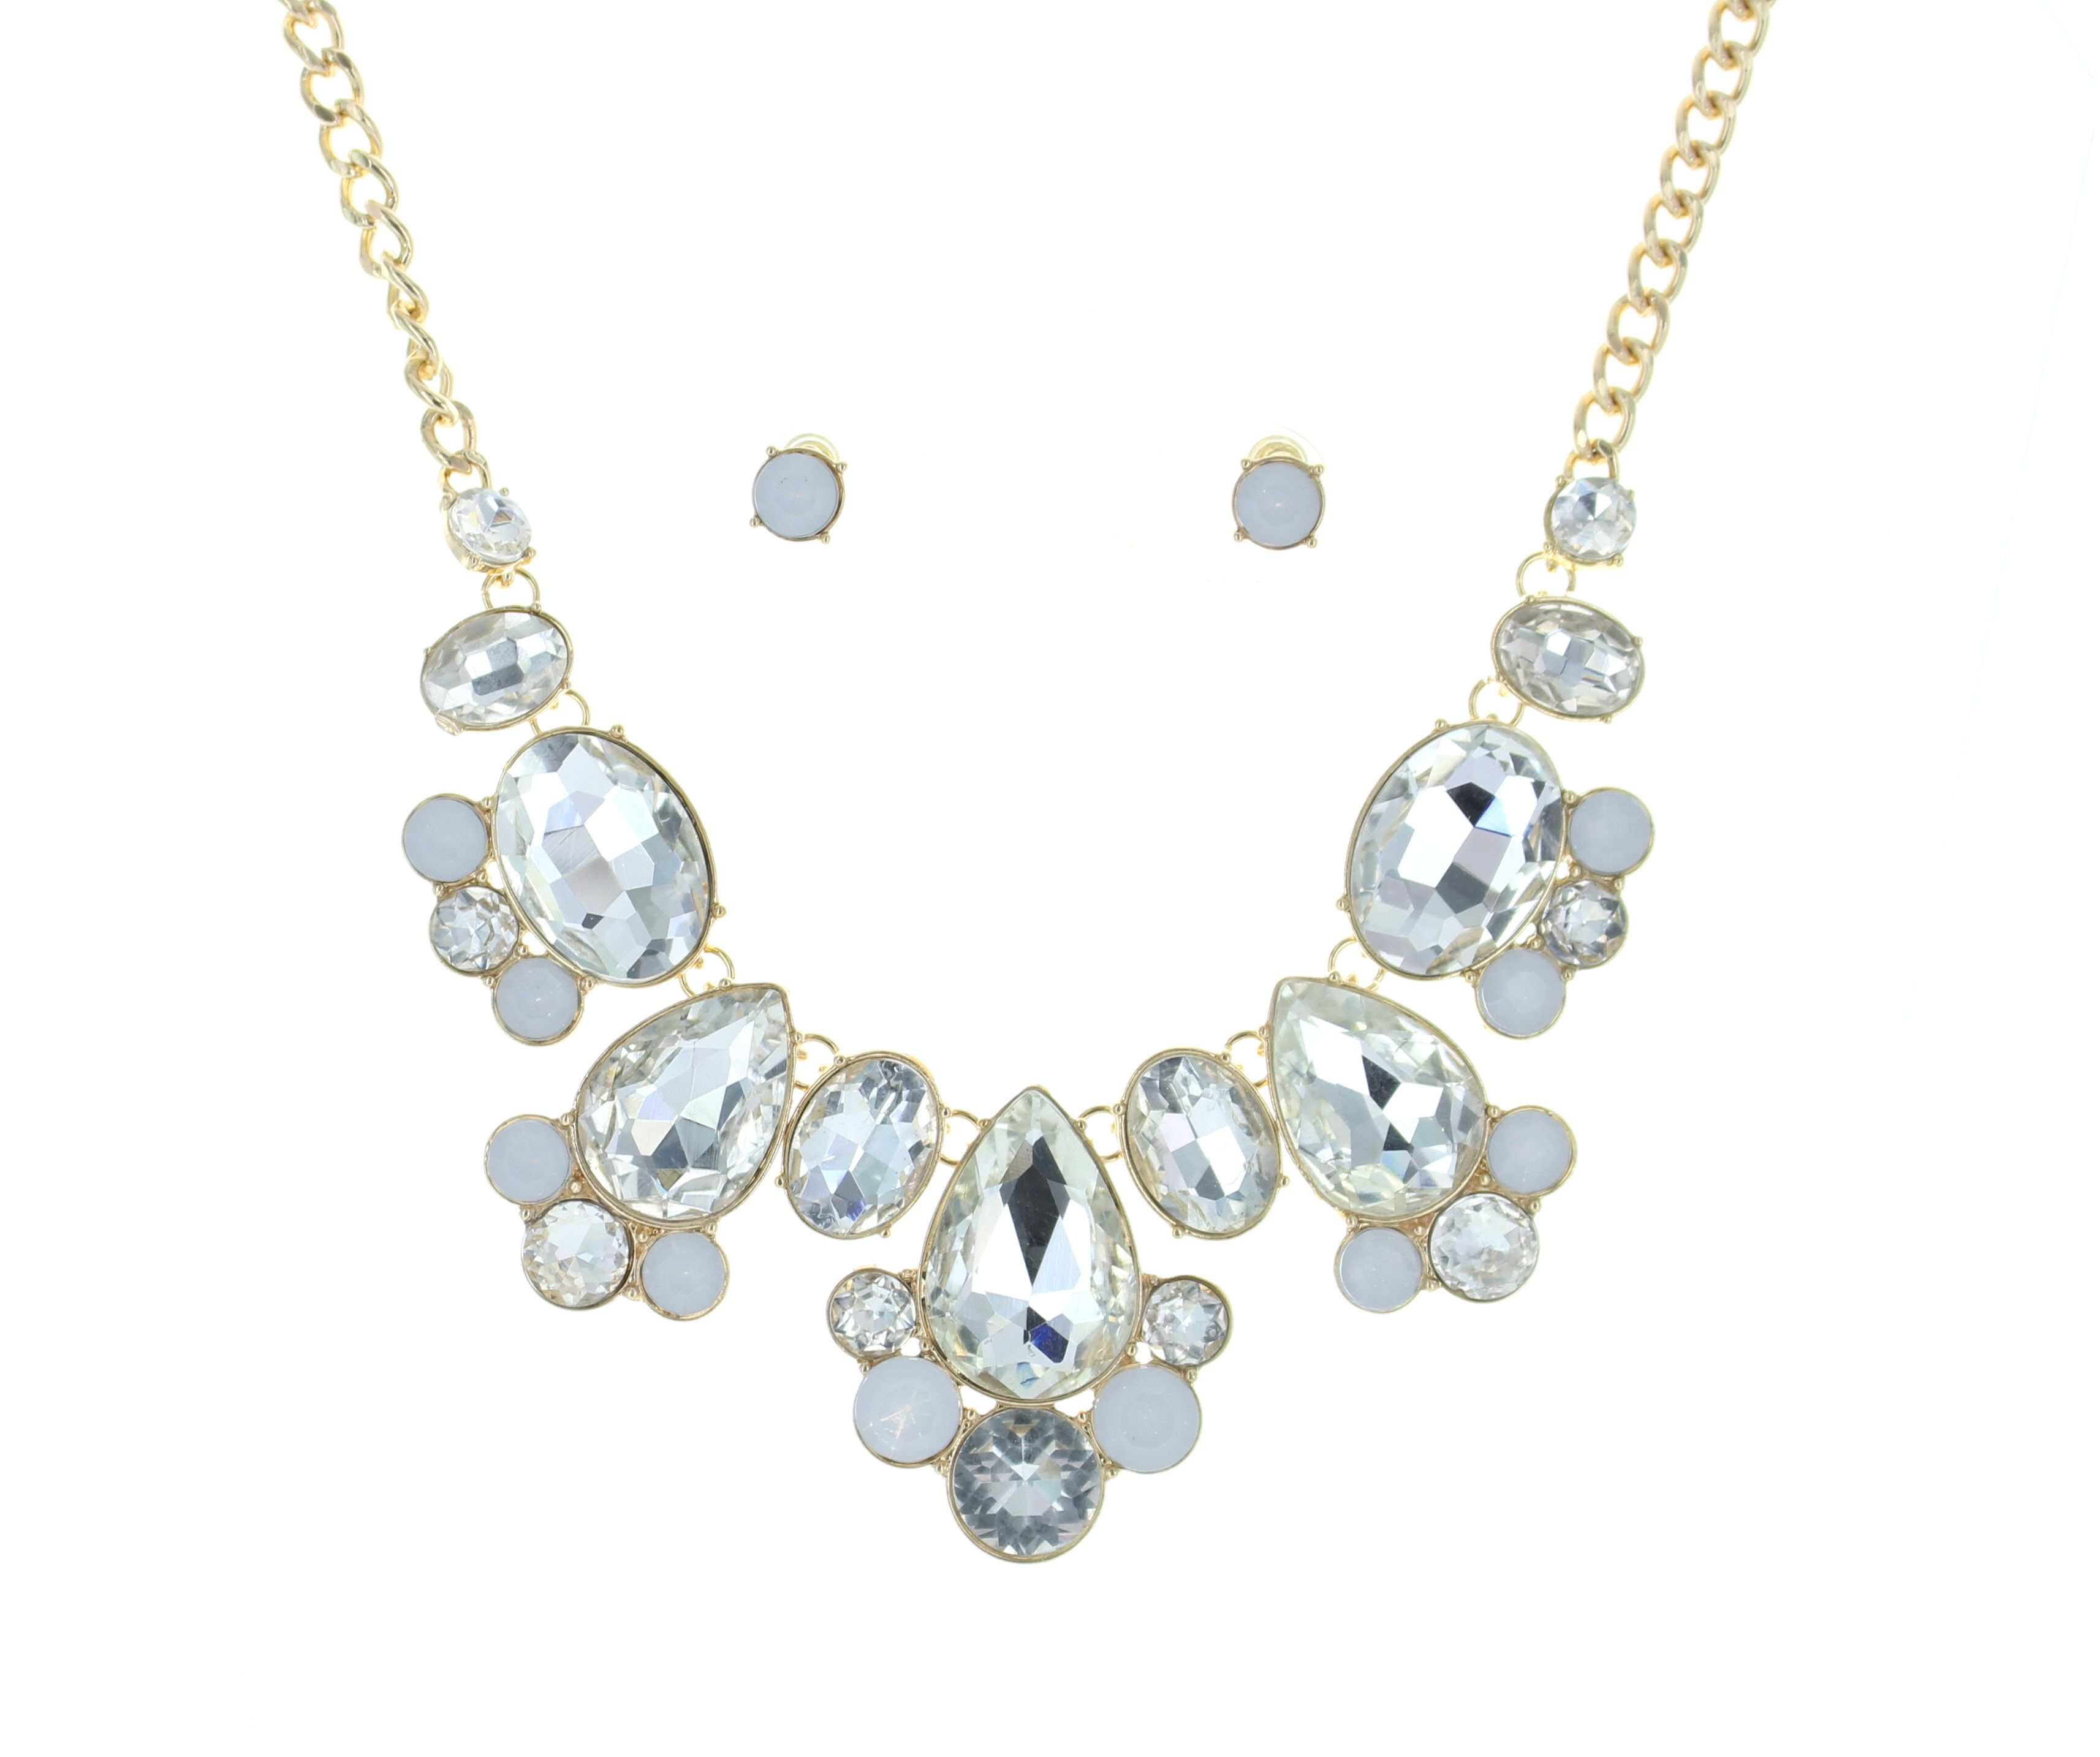 Best Of Everything! Showgirl Collar $16